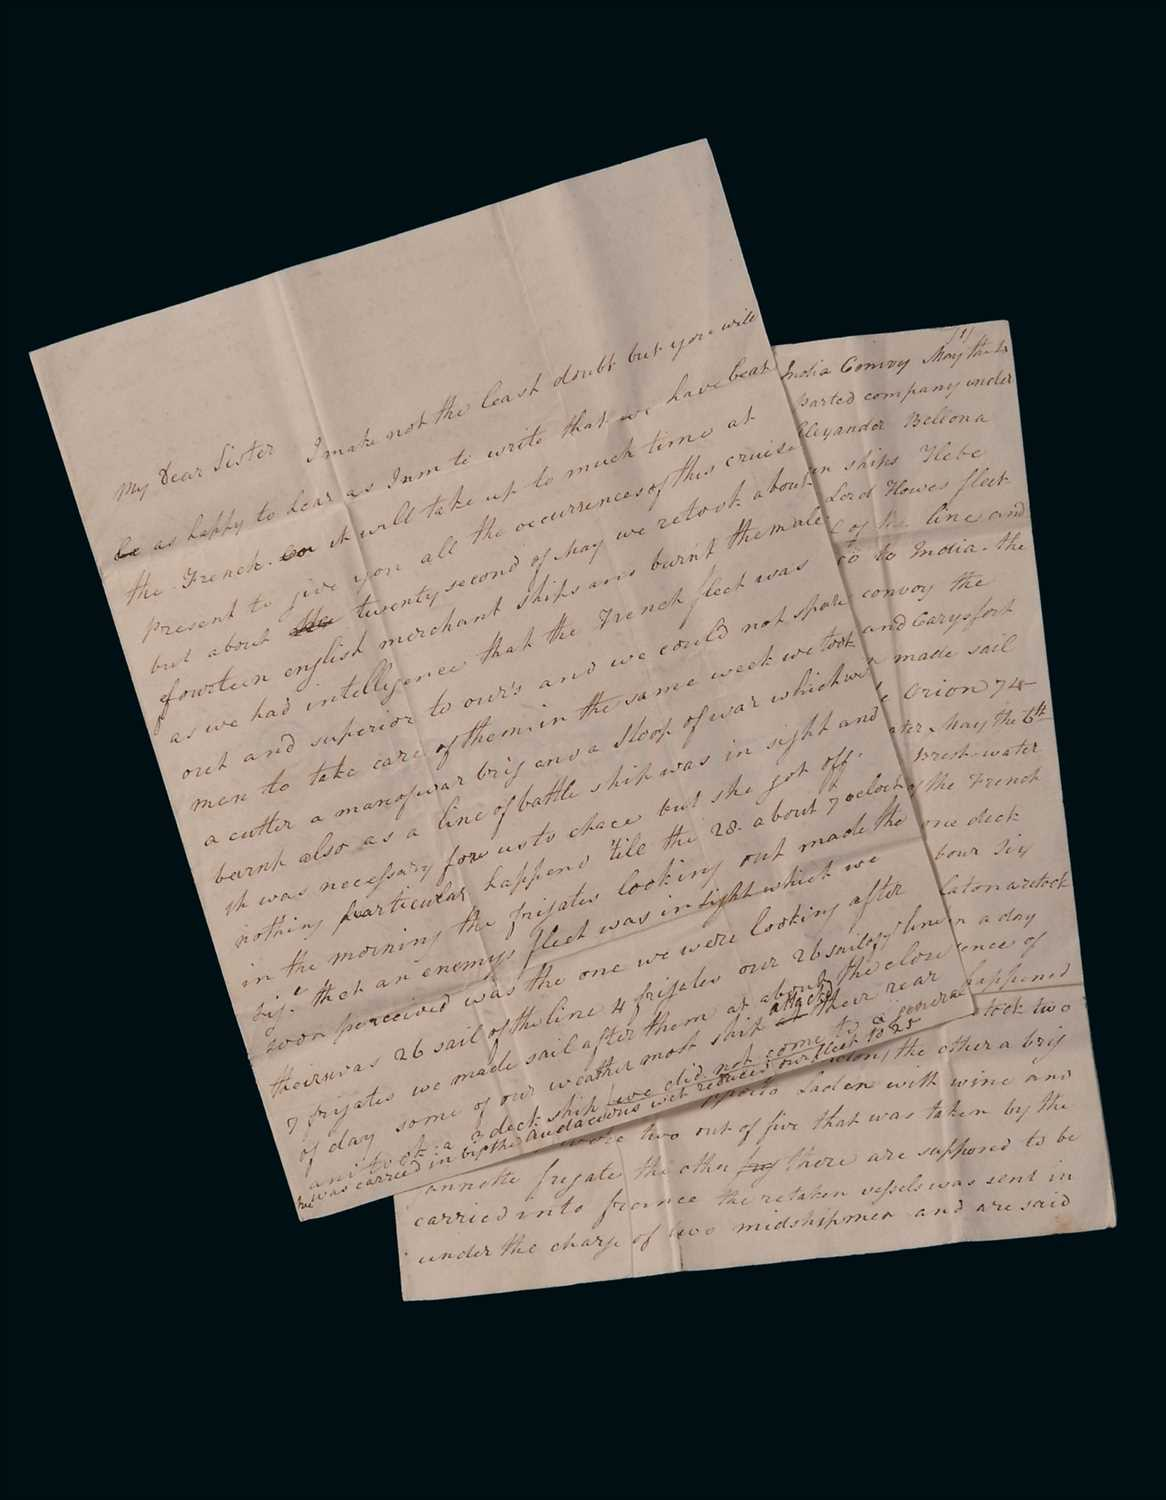 Lot 99 - THE GLORIOUS FIRST OF JUNE, 1794: A FIRST HAND...